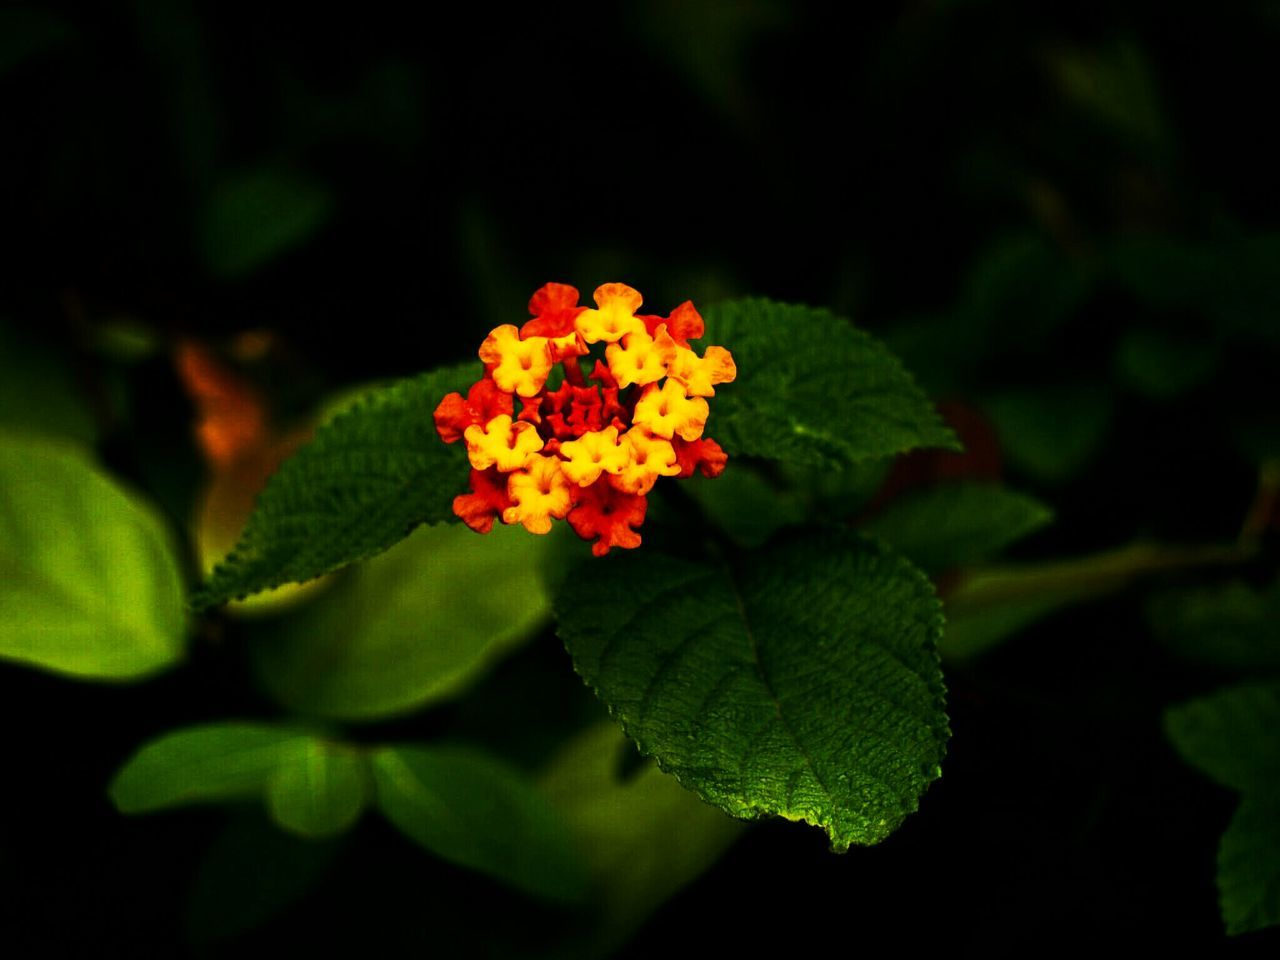 flower, leaf, growth, green color, freshness, beauty in nature, plant, nature, petal, fragility, lantana camara, flower head, no people, close-up, blooming, outdoors, red, day, zinnia